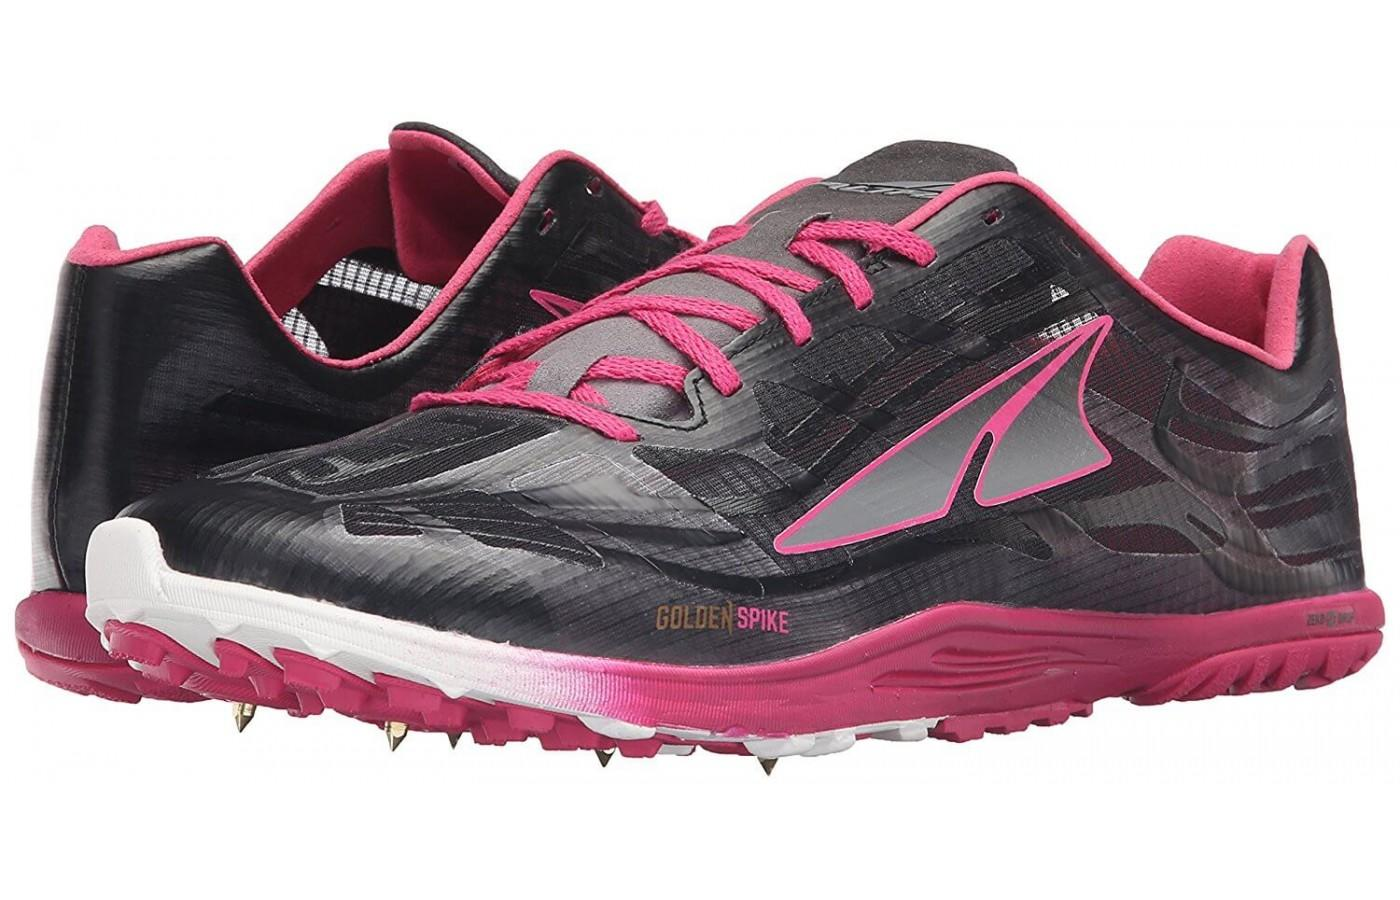 the Altra Golden Spike is made of durable materials and is a one-piece construction